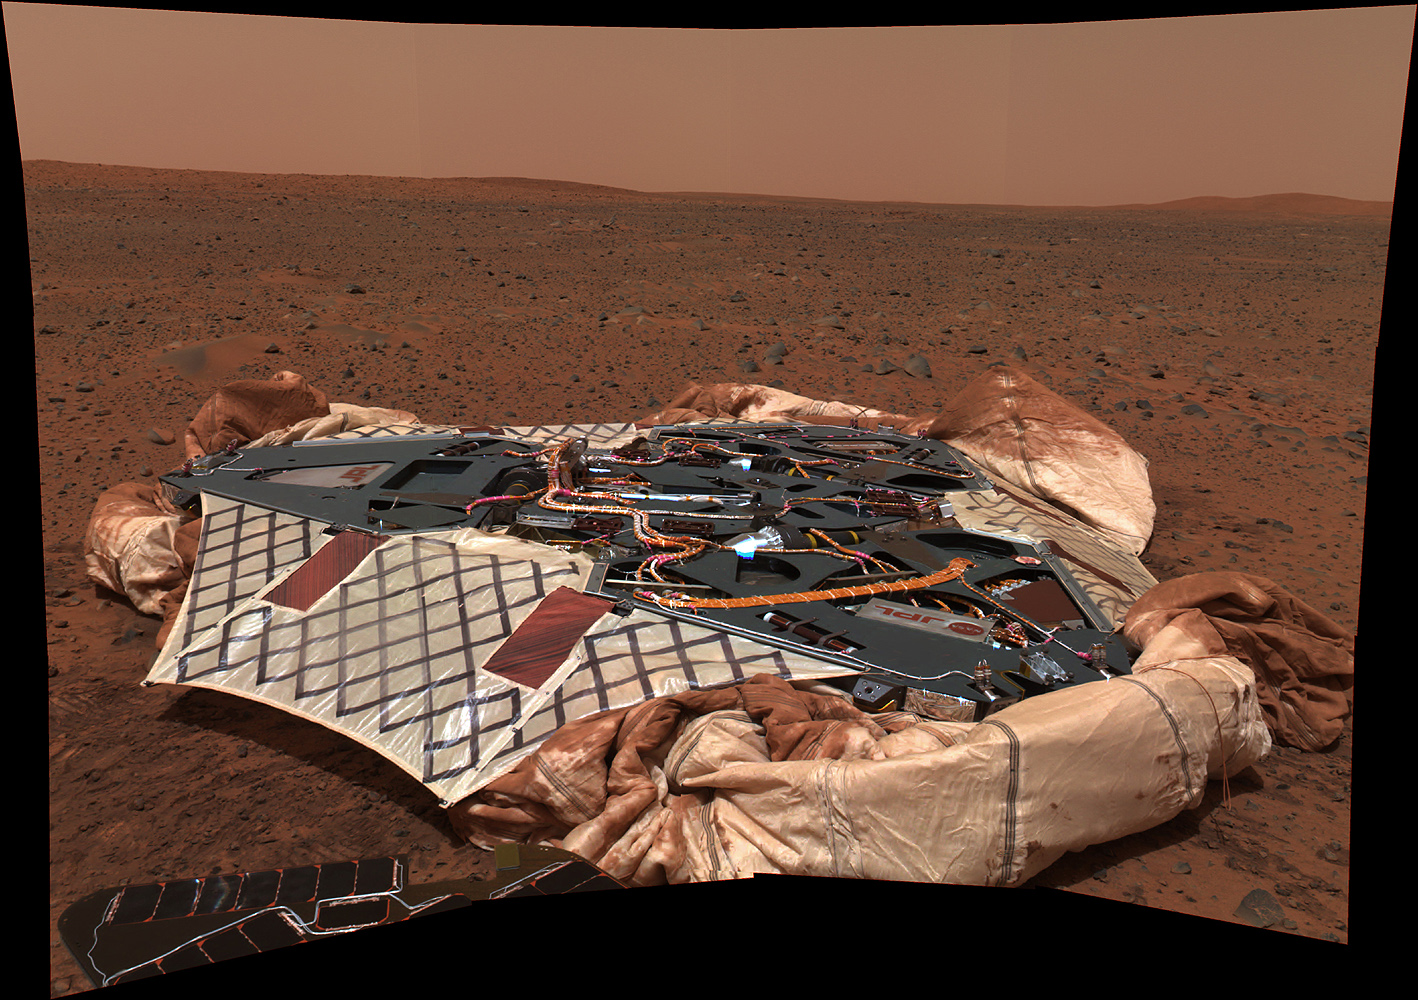 mars rover spirit - photo #17